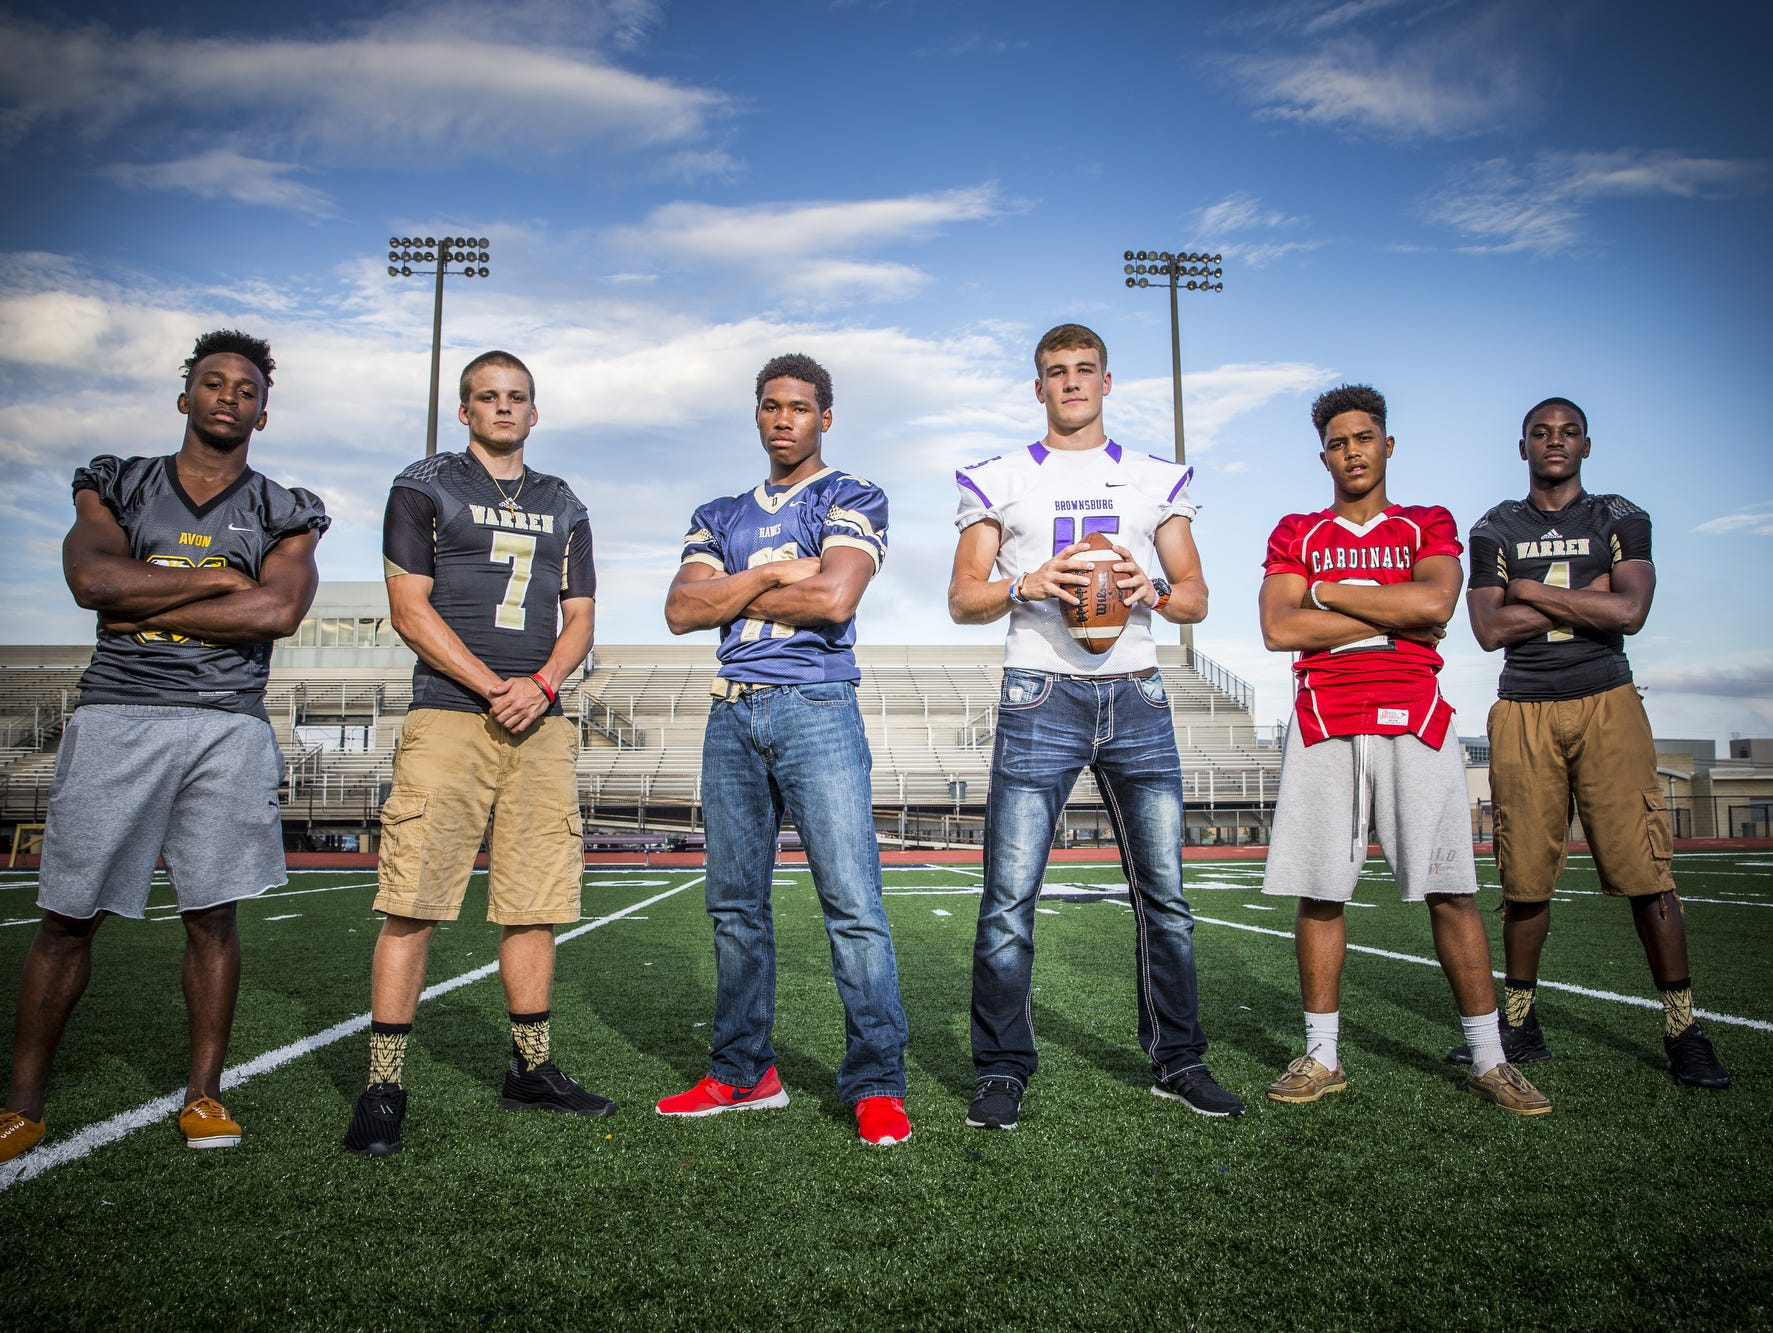 From left, Bryant Fitzgerald, running back for Avon, Zach Summeier, quarterback for Warren Central, Tyrone Tracy, running back for Decatur Central, Hunter Johnson, quarterback for Brownsburg, Blake Evans, wide receiver for Southport and David Bell, wide receiver for Warren Central.